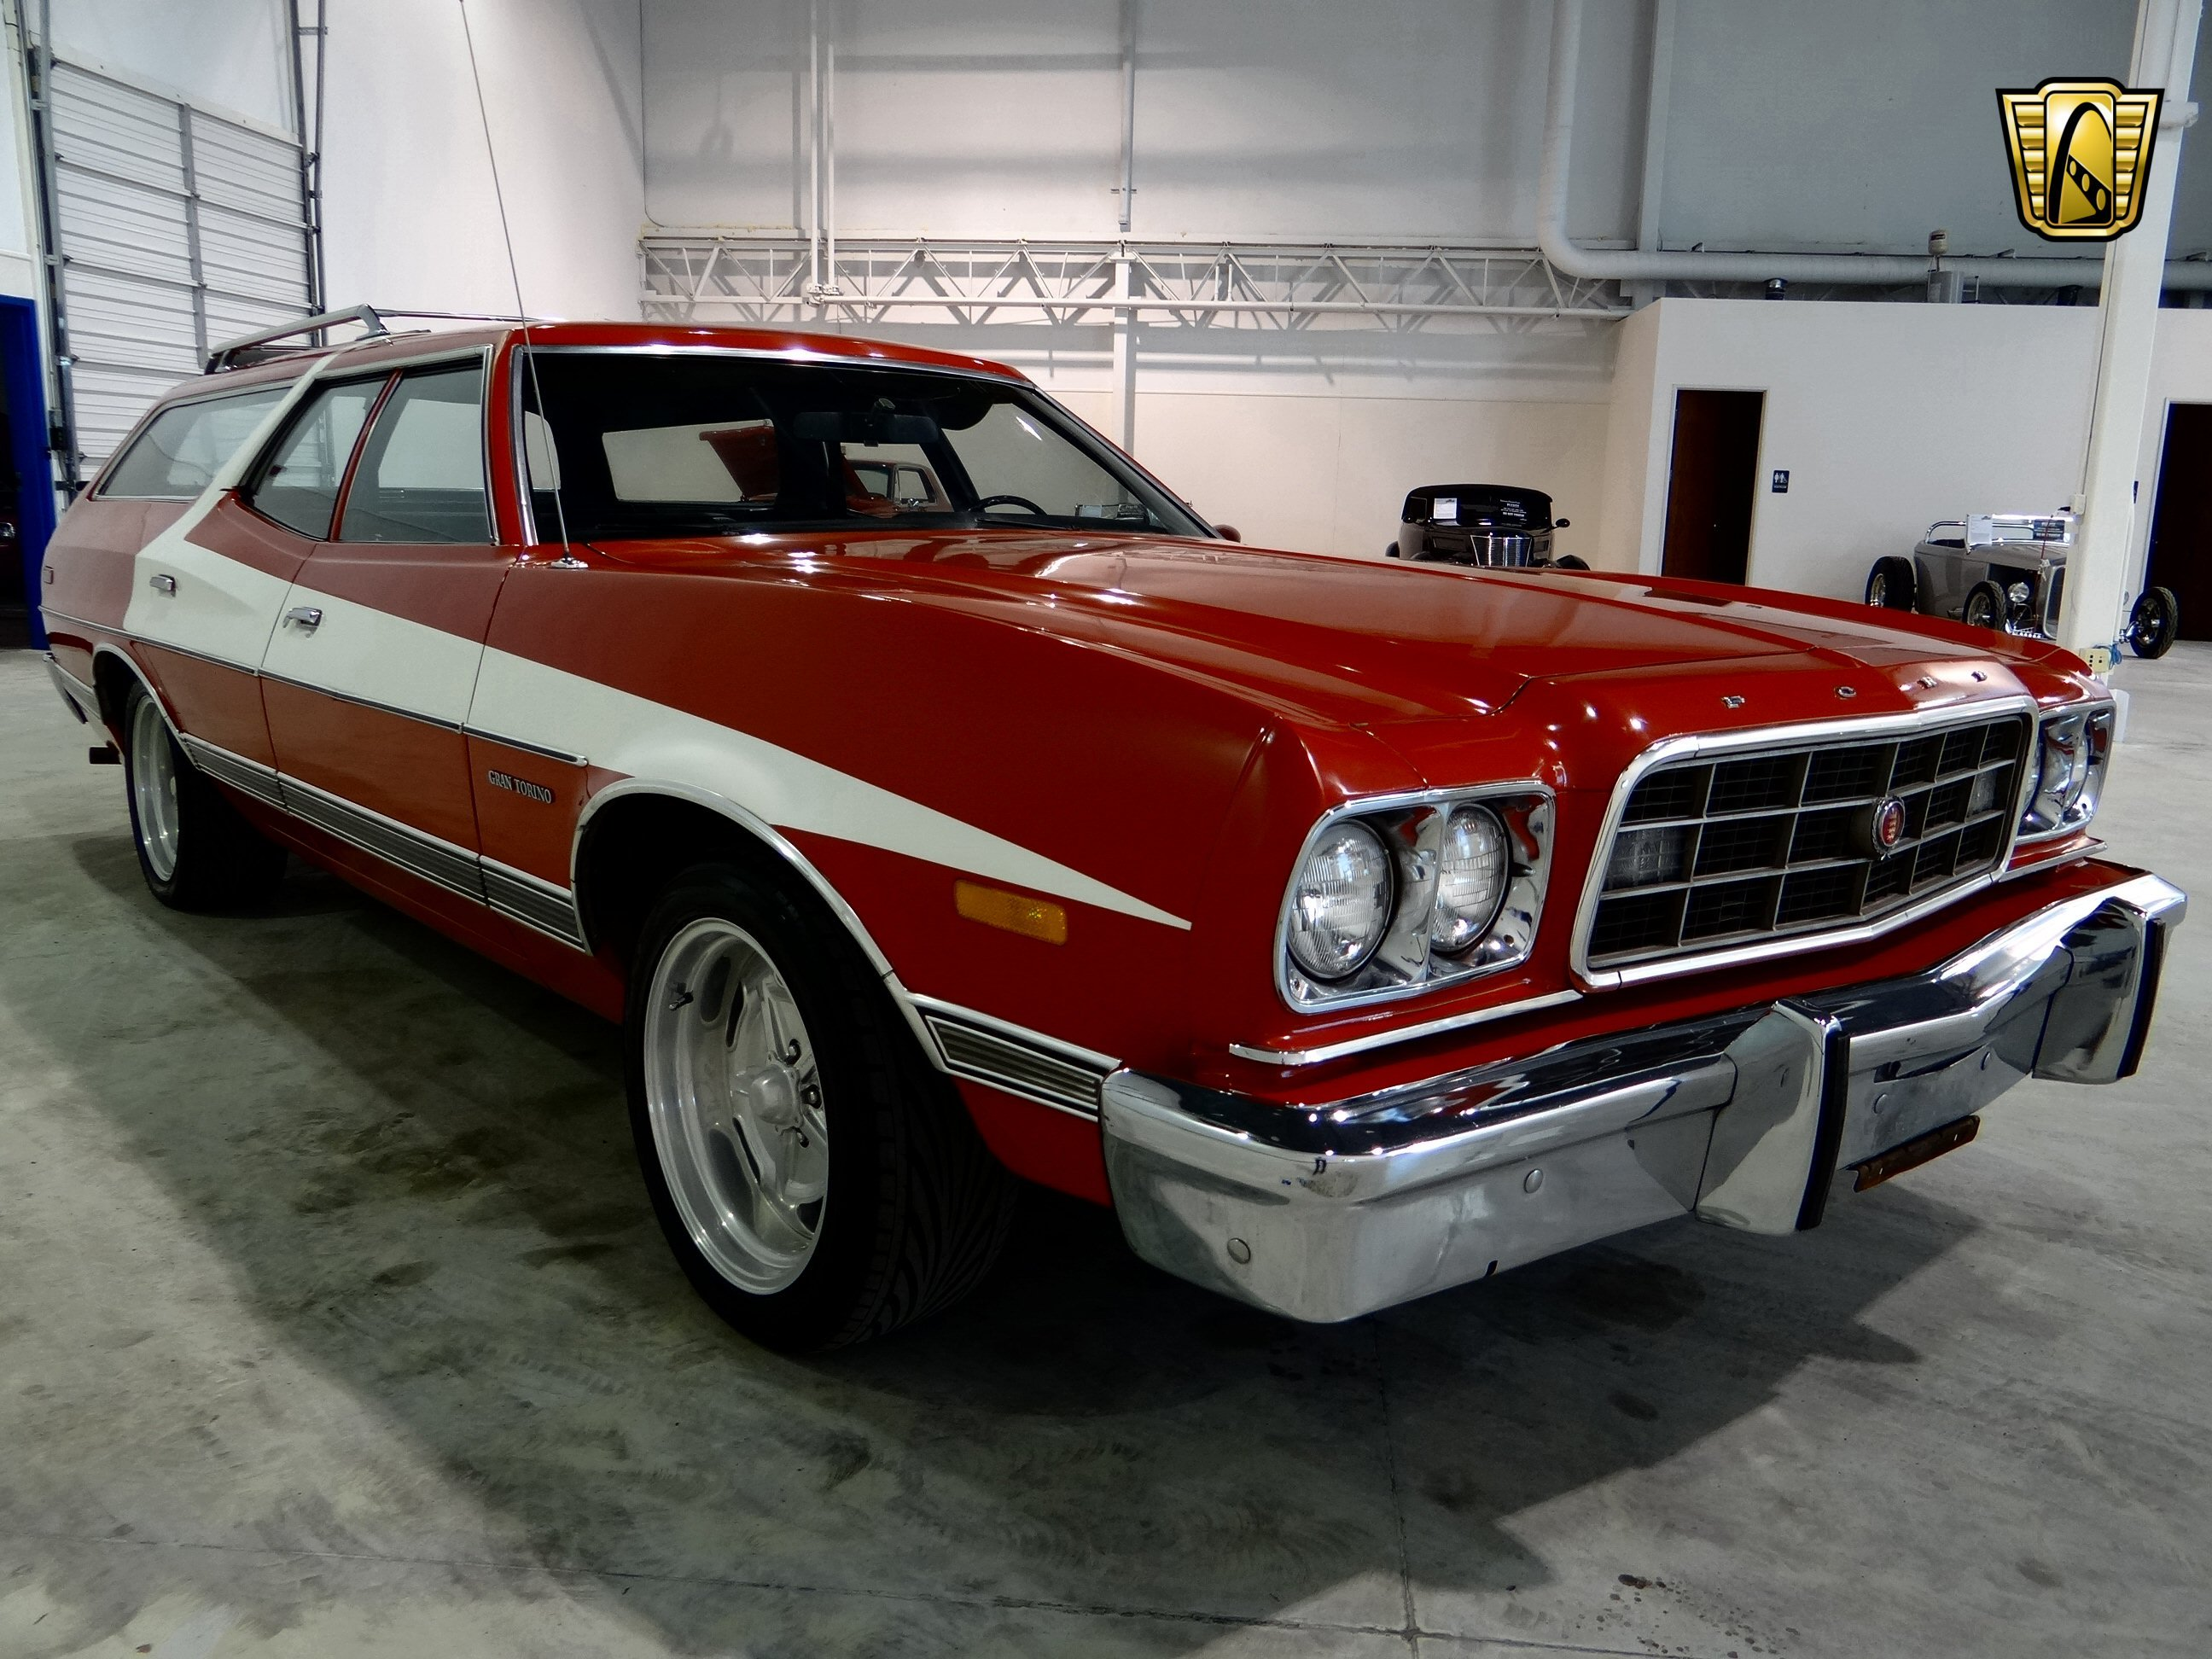 1973 Ford Gran Torino stationwagon muscle classic hot rod rods (15) wallpaper | 2592x1944